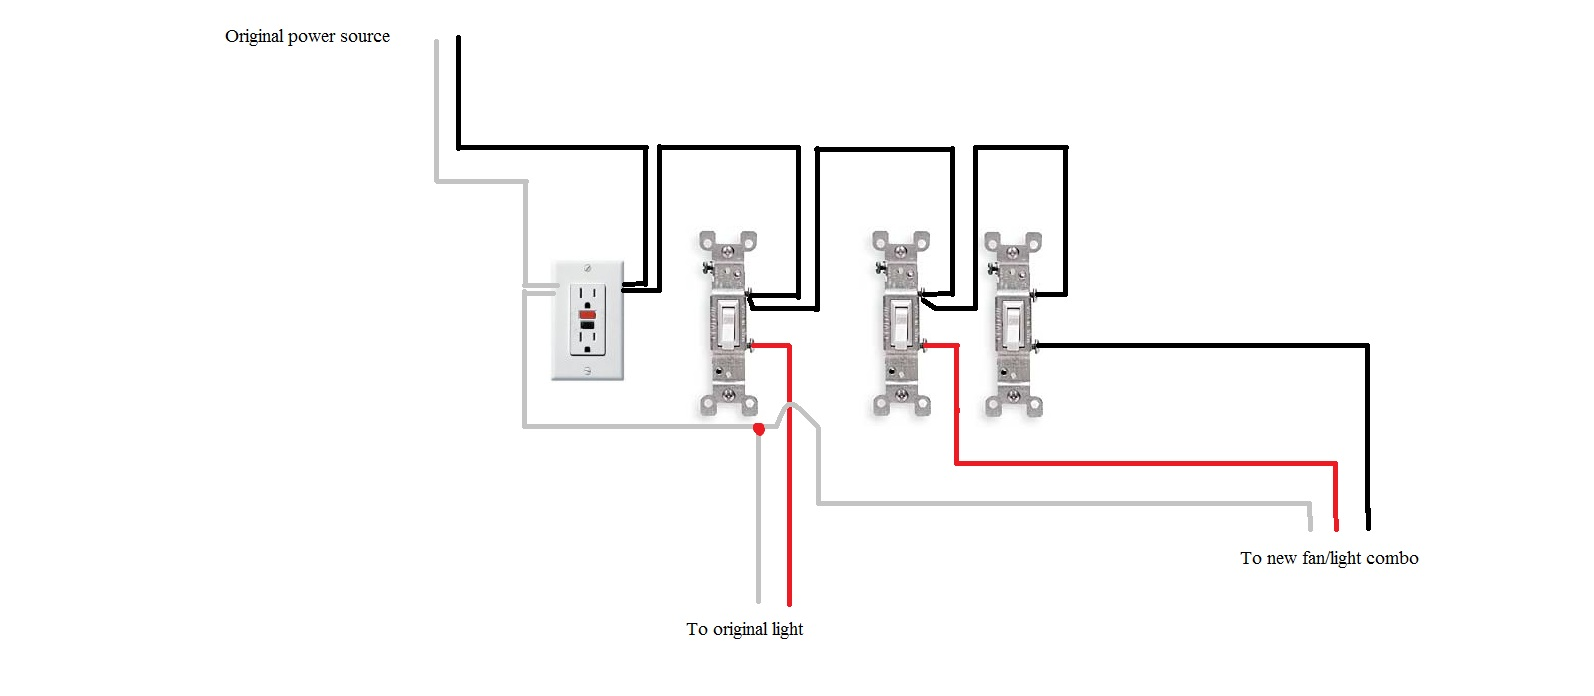 i have an existing bath switched wall light and gfi outlet